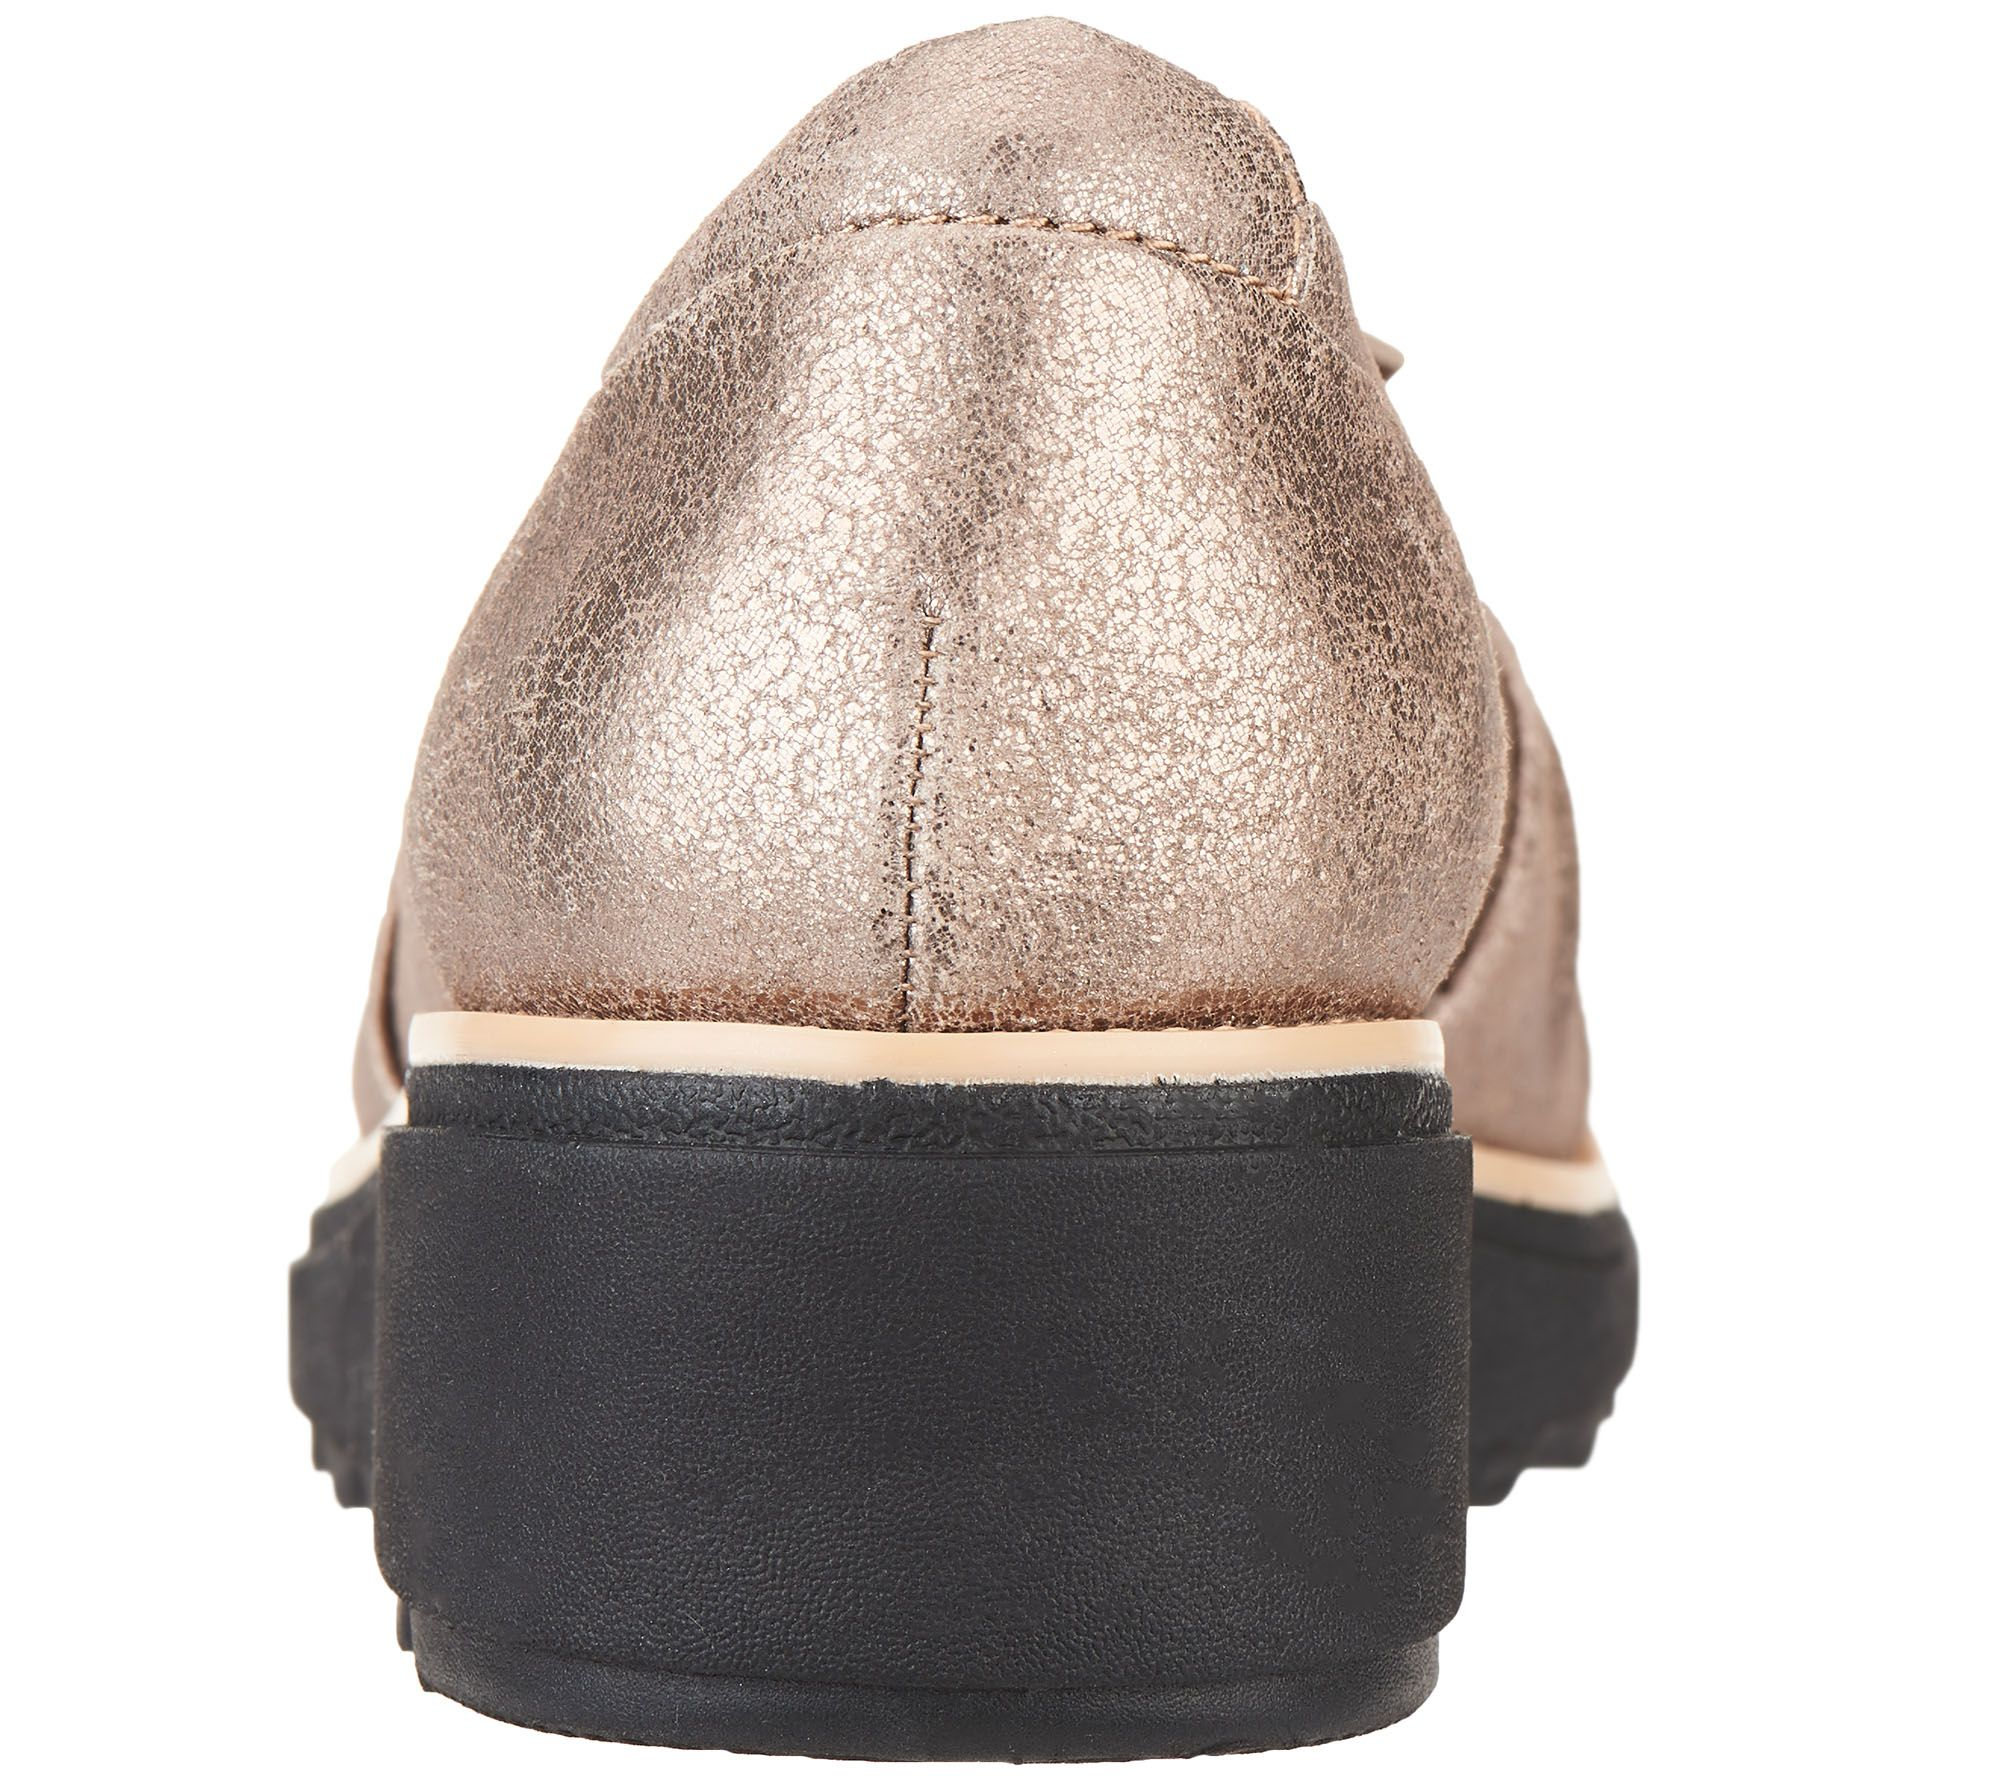 32e843c2fcf Clarks Suede Slip-On Loafer with Knotted Detail - Sharon Dasher - Page 1 —  QVC.com